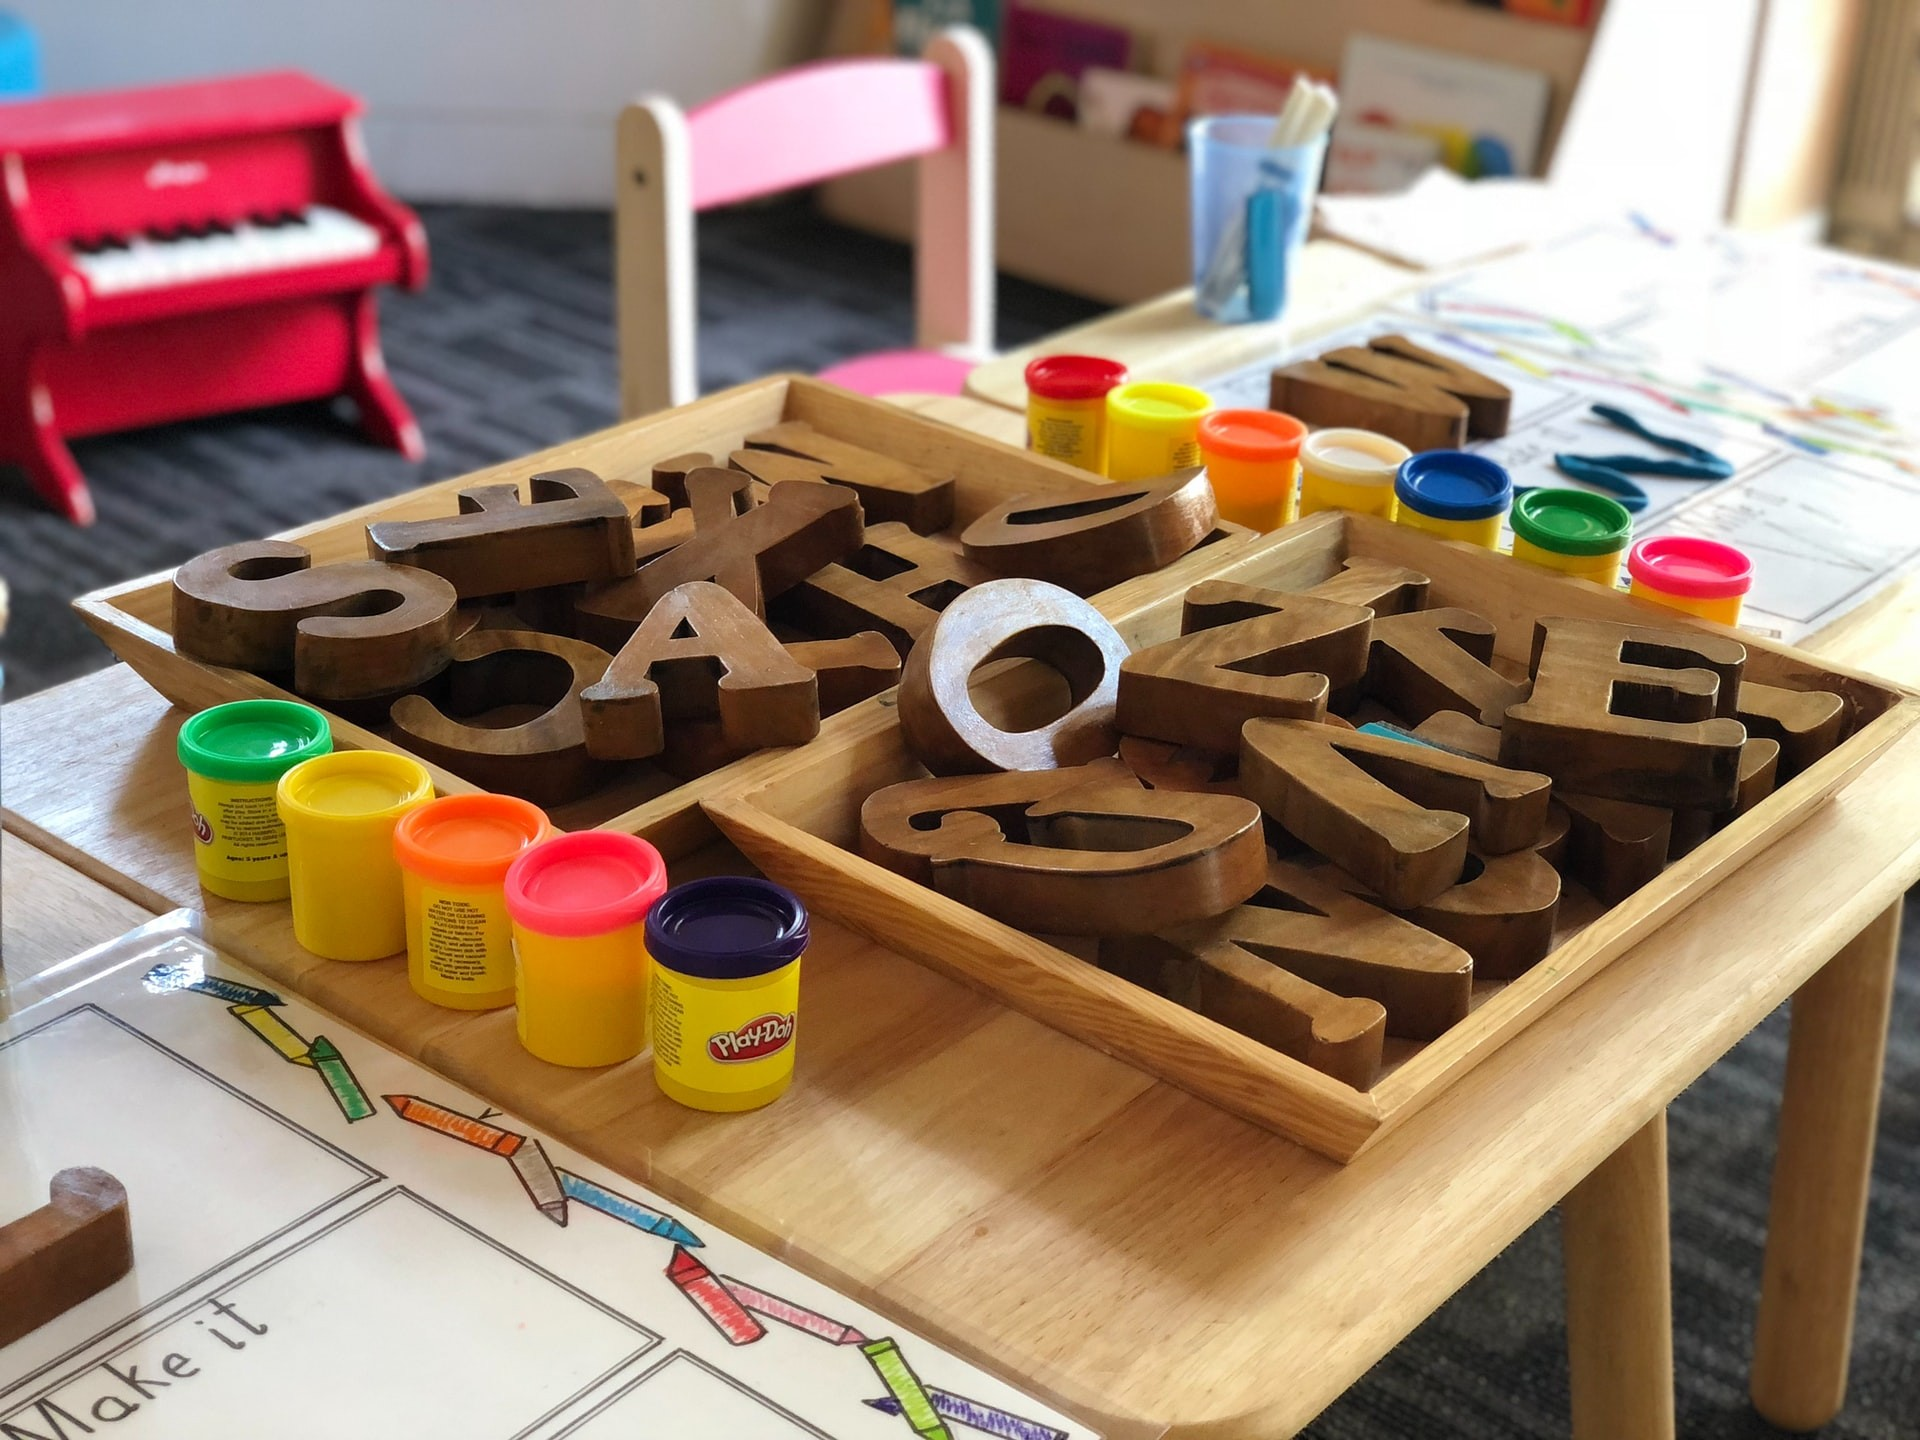 Wooden blocks and play-dough set out as part of a preschool lesson plan